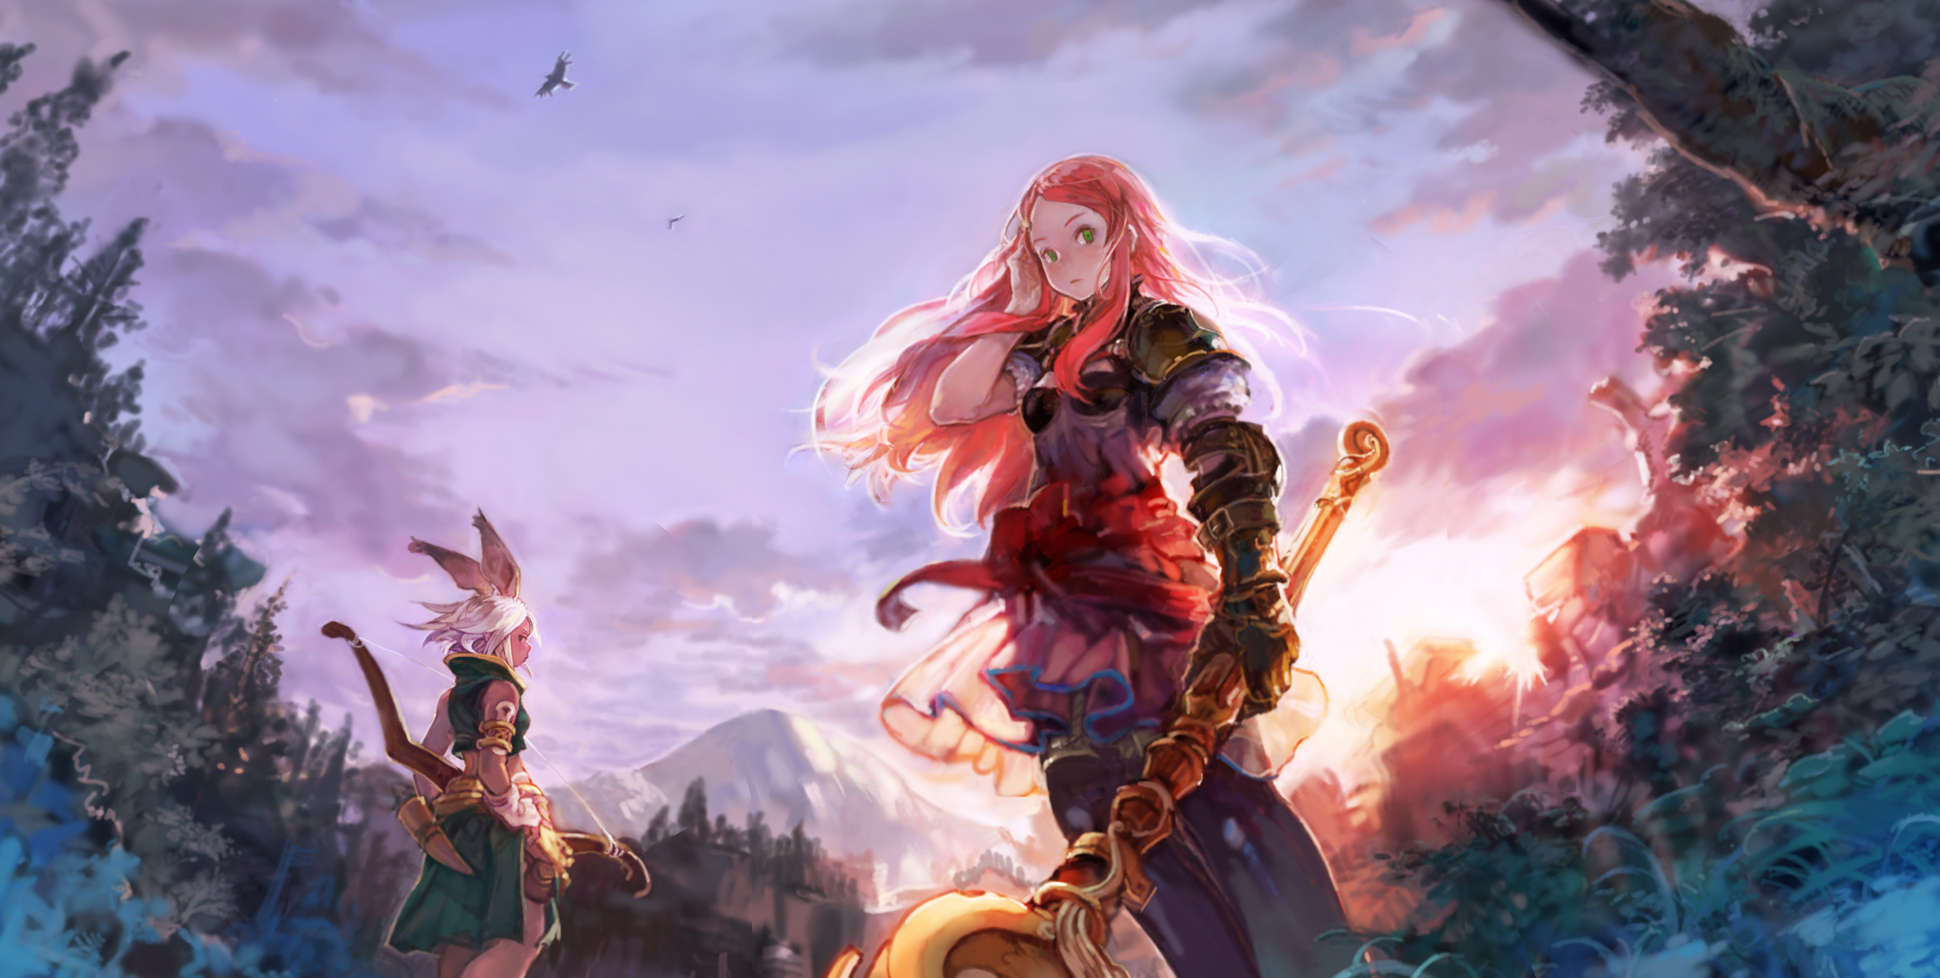 Final Fantasy Tactics director says he should probably make another installment before he dies